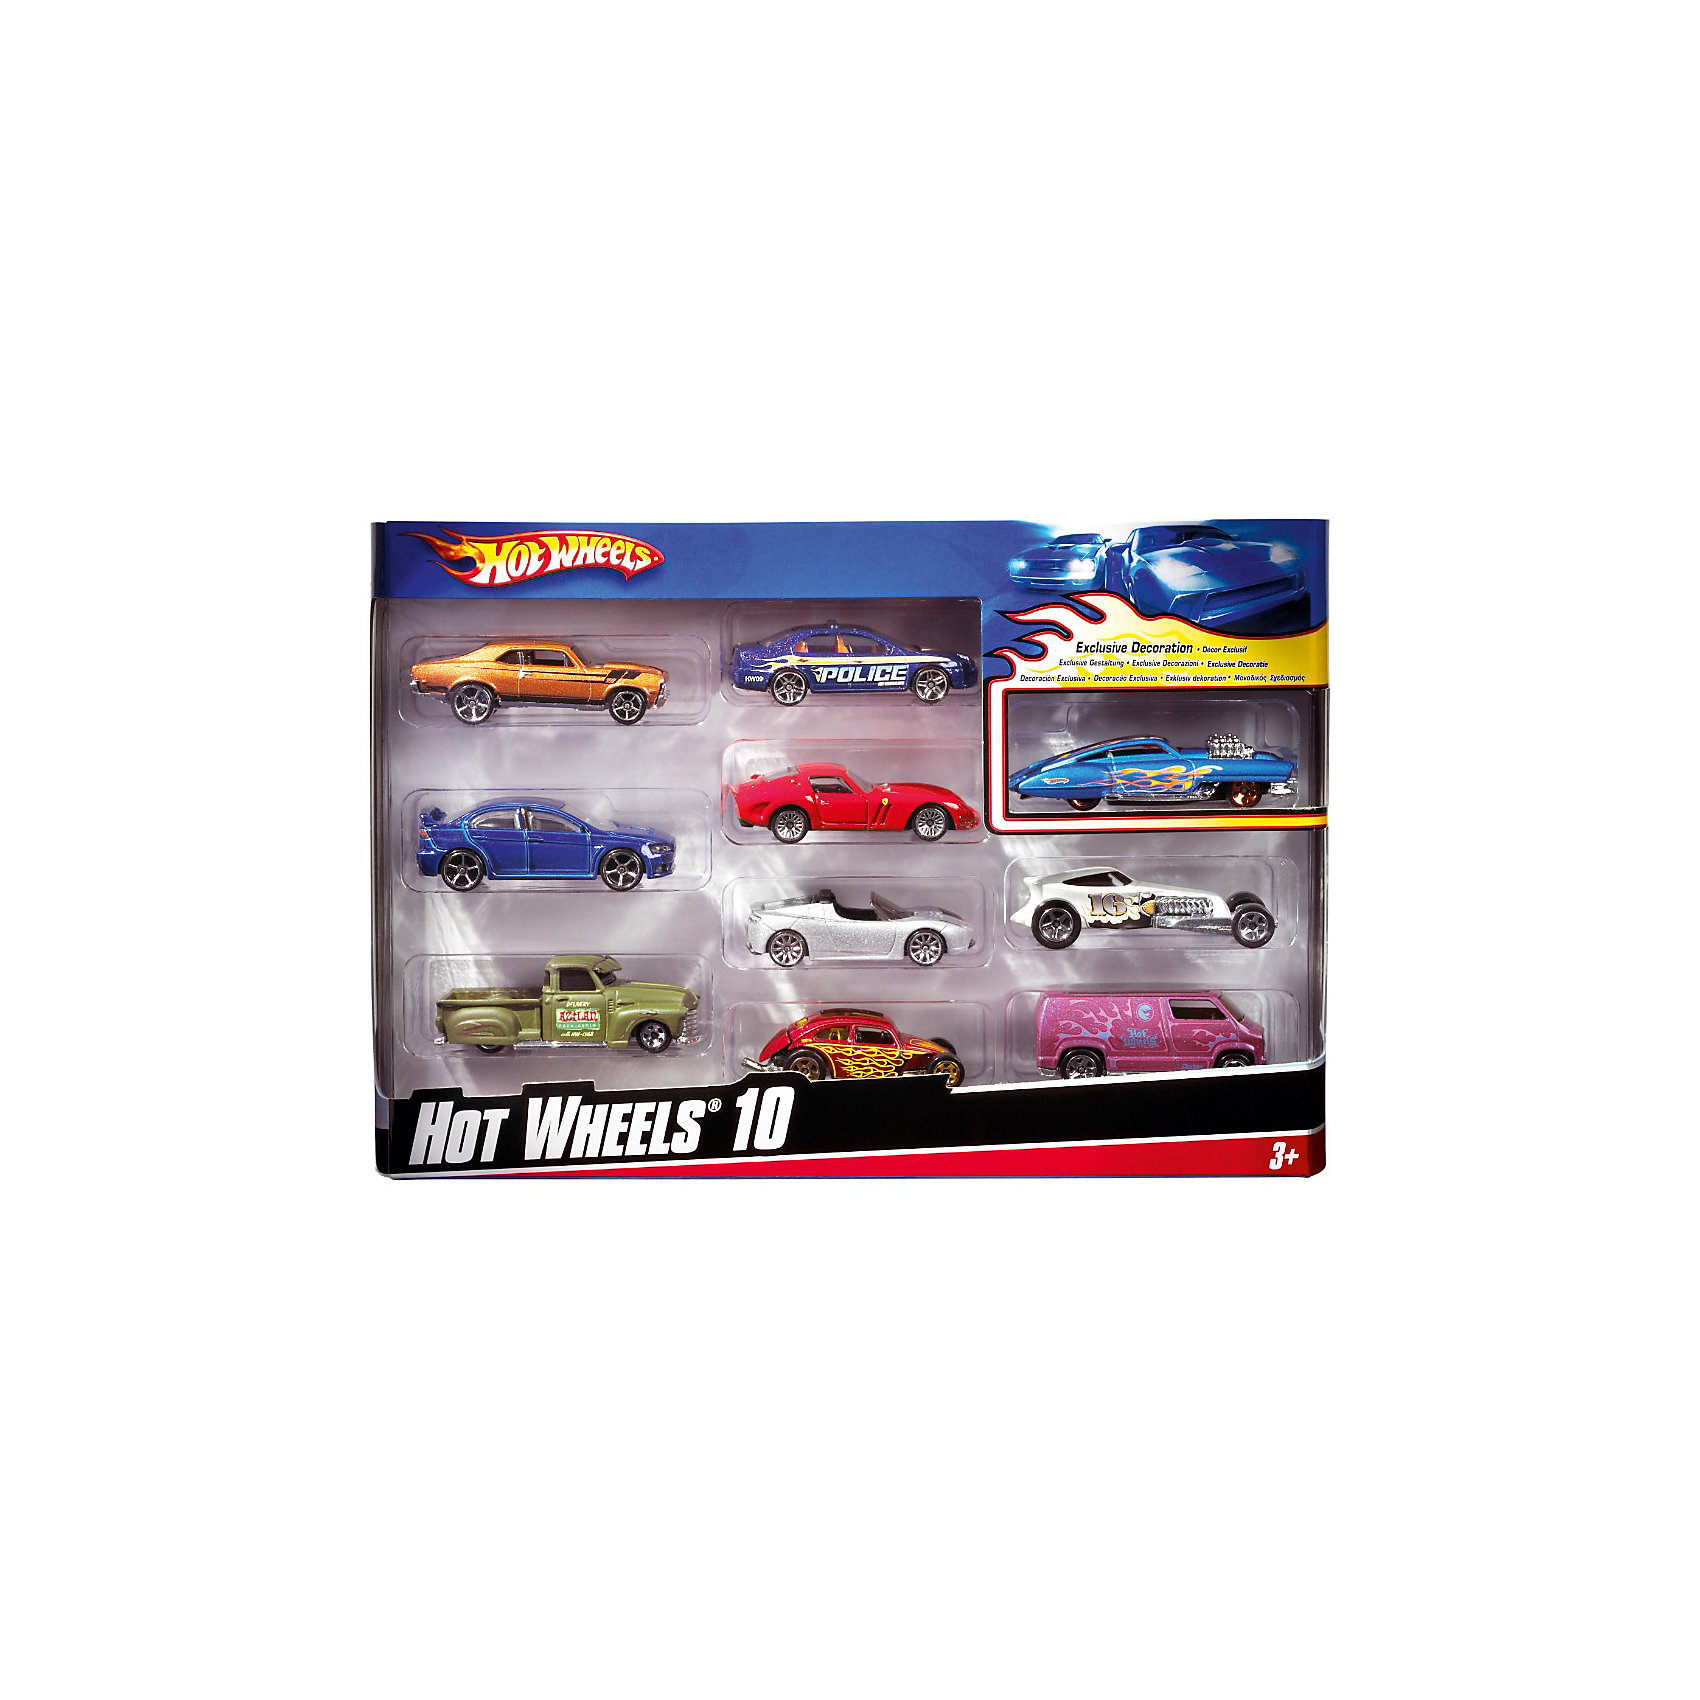 Mattel Набор из 10 машинок, металл, Hot Wheels devil take the hindmost a history of financial speculation